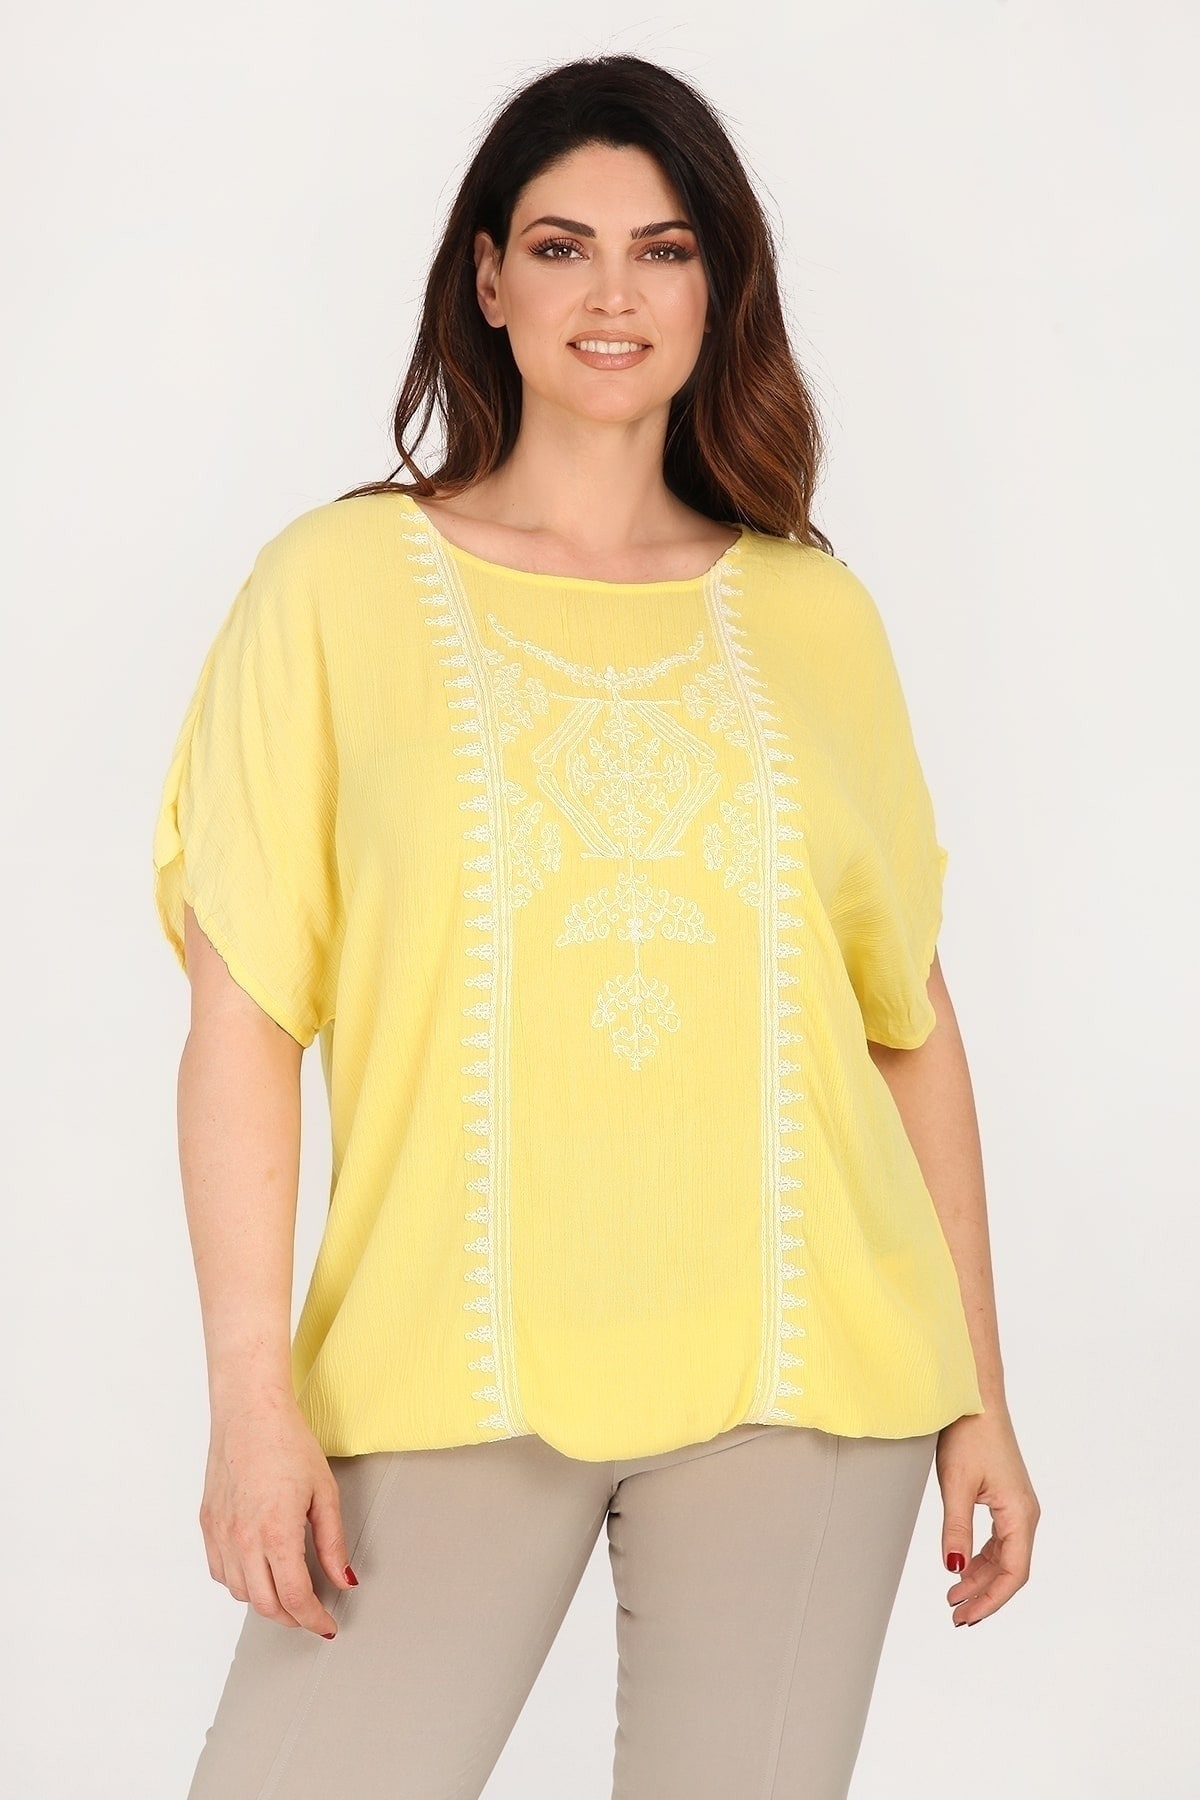 Viscose tunic with embroidery on the neckline